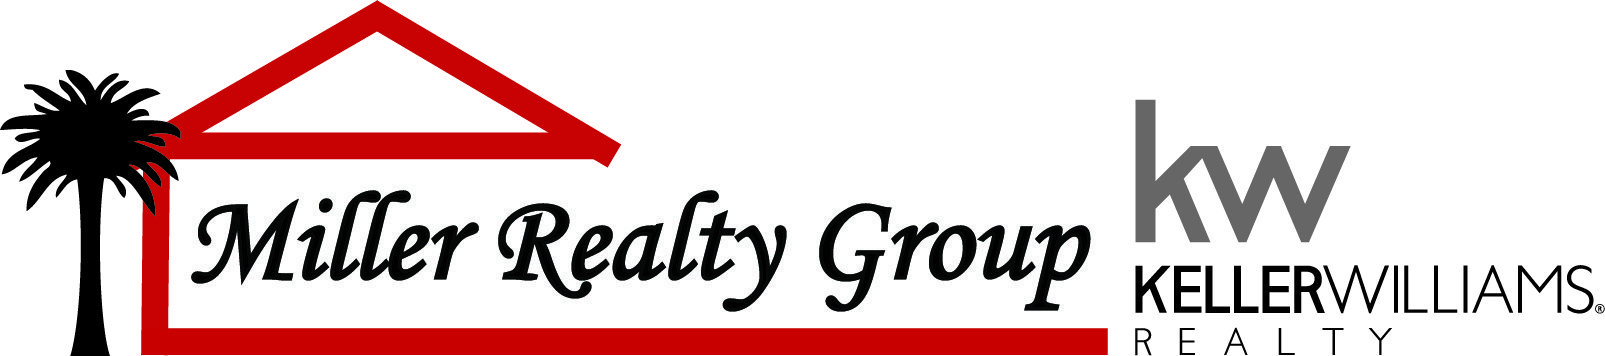 Miller Realty Group with Keller Williams Logo